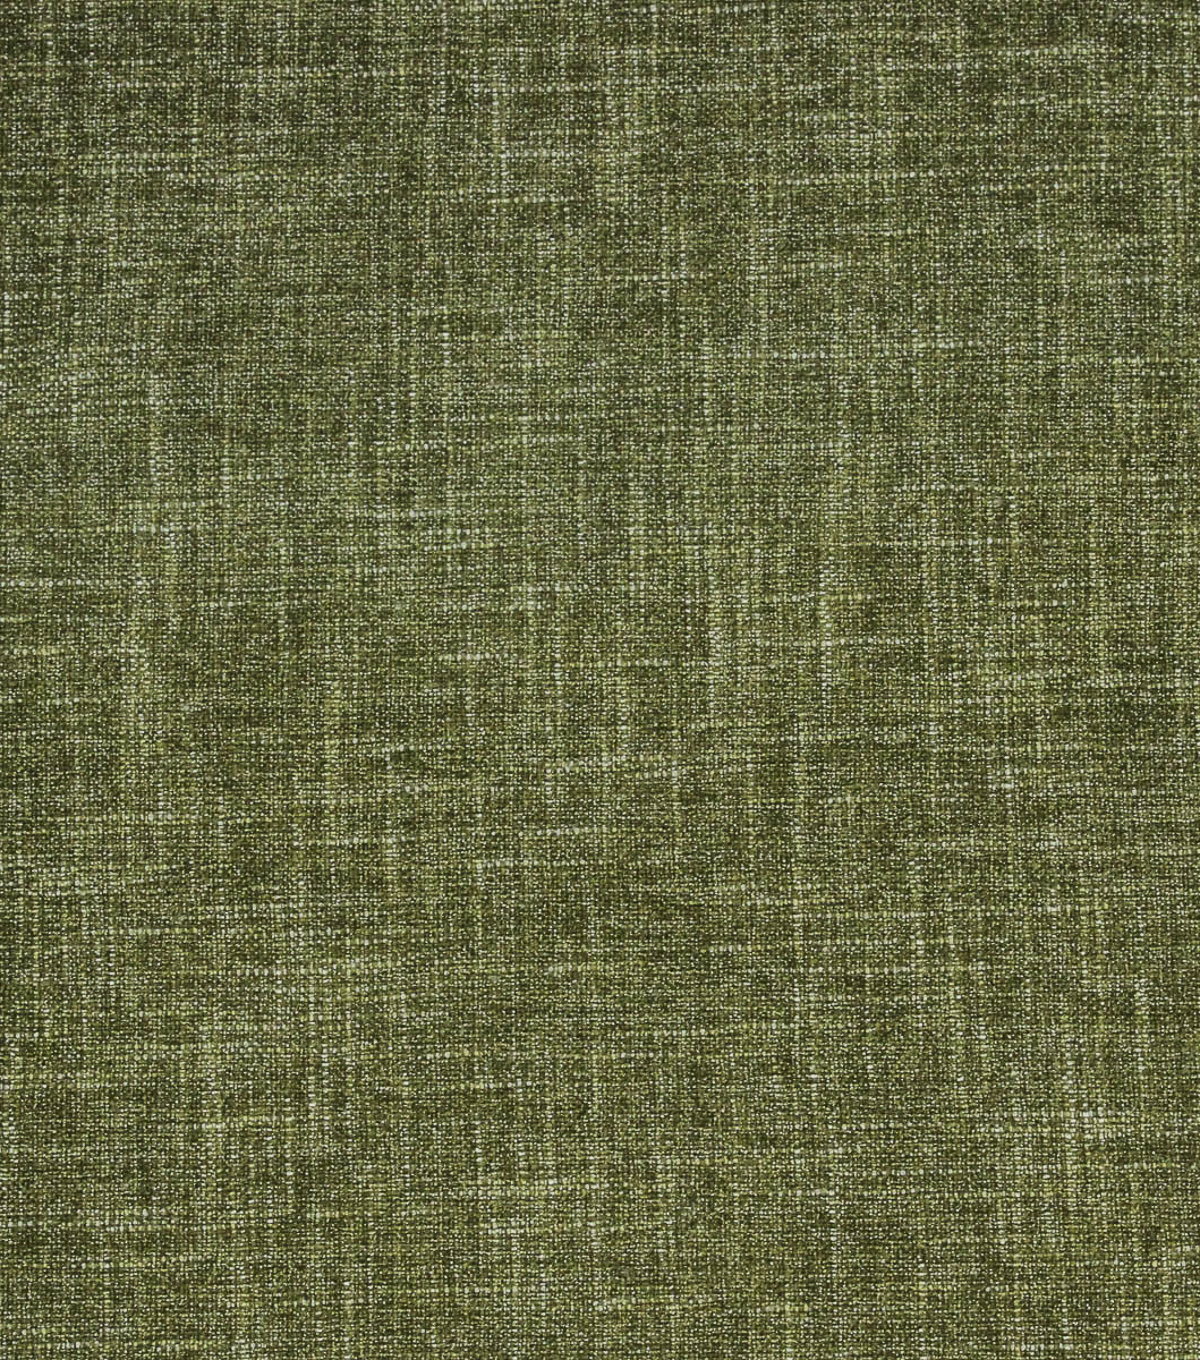 Richloom Studio Upholstery Fabric 55\u0022-Aspire/Foliage